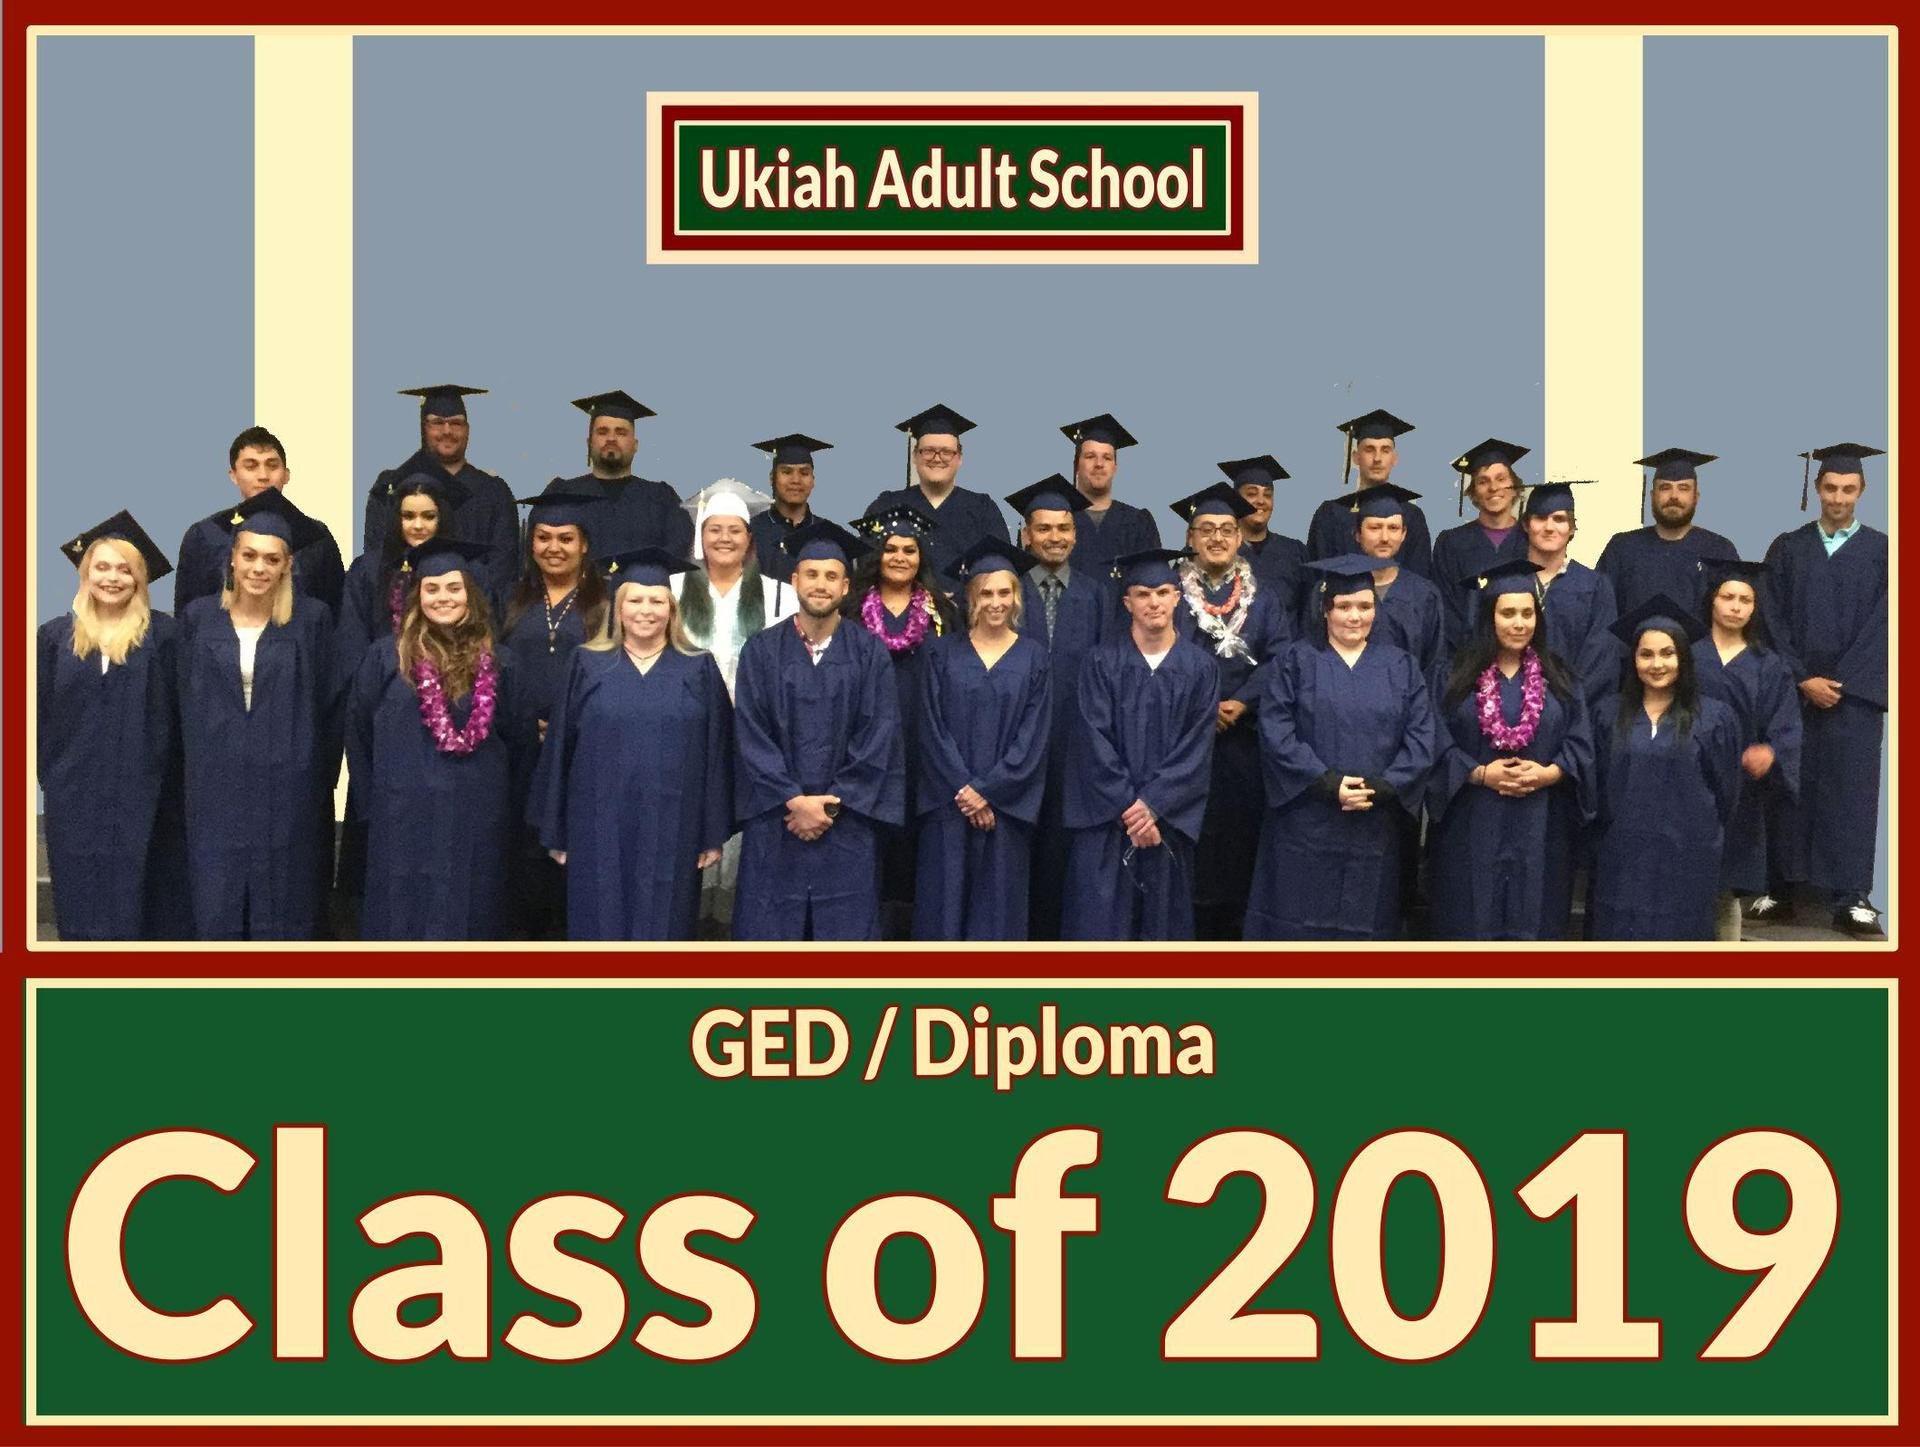 Image of the graduating class of 2019